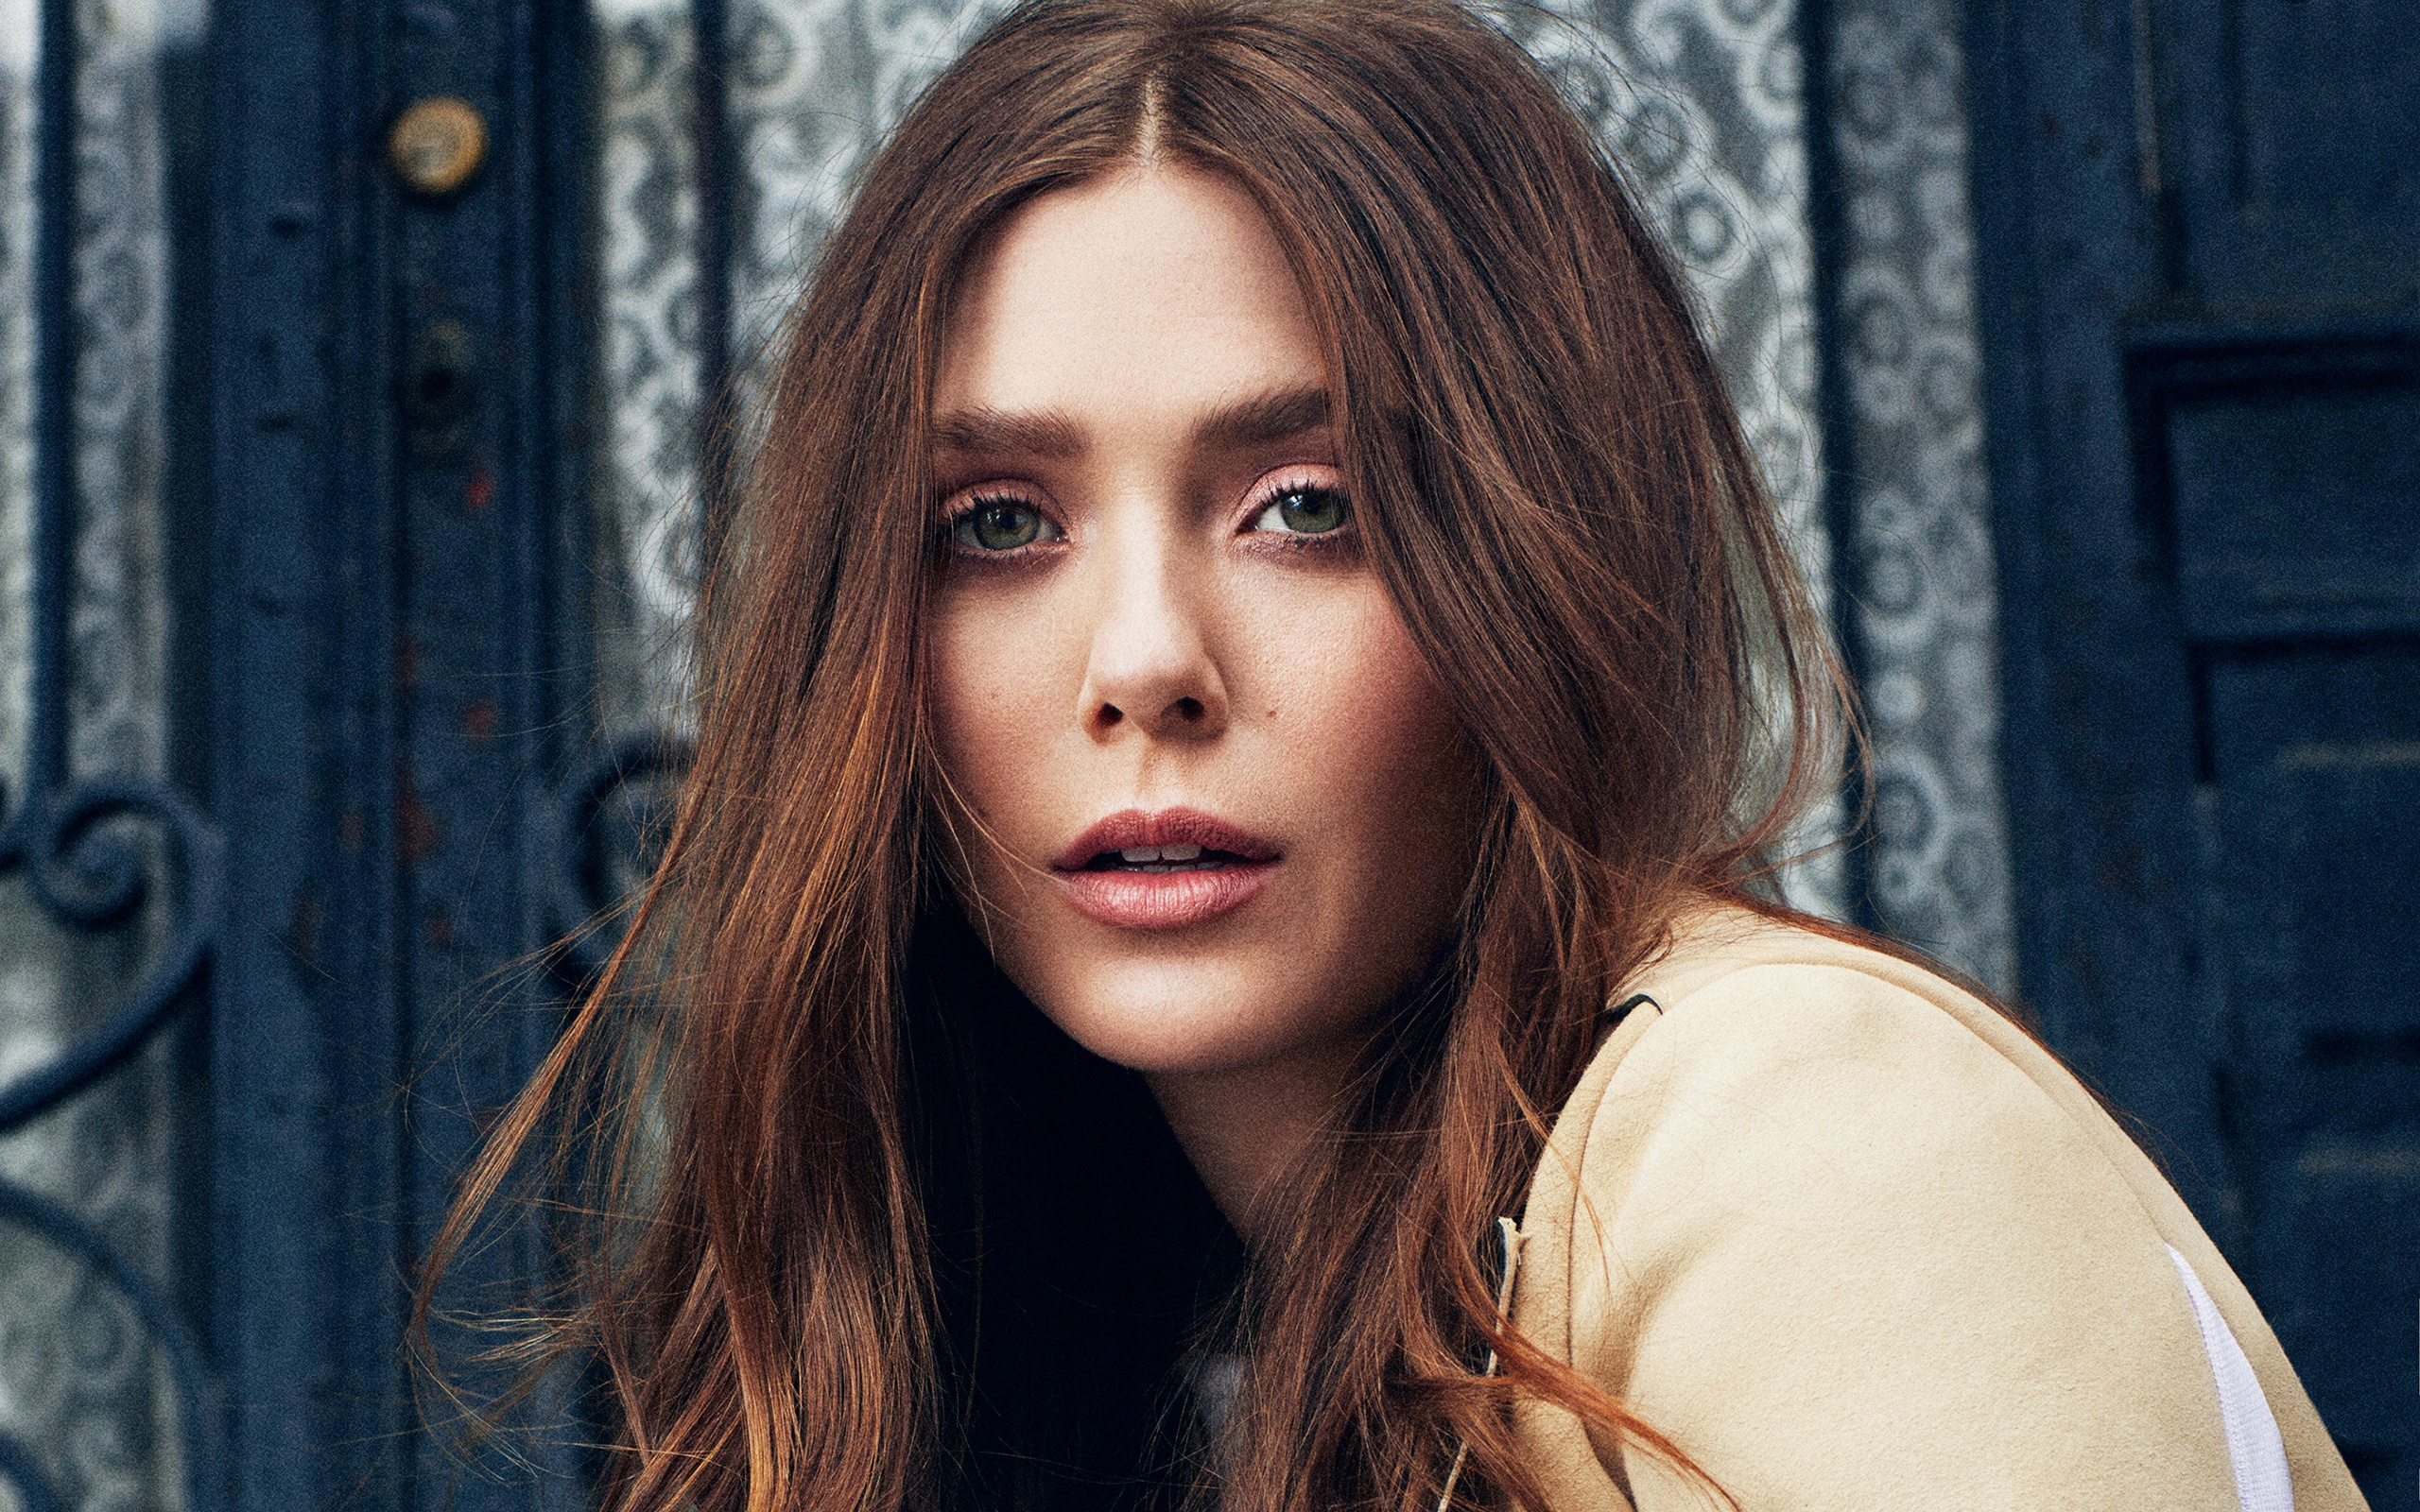 Elizabeth Olsen Wallpapers Pictures Images 2560x1600